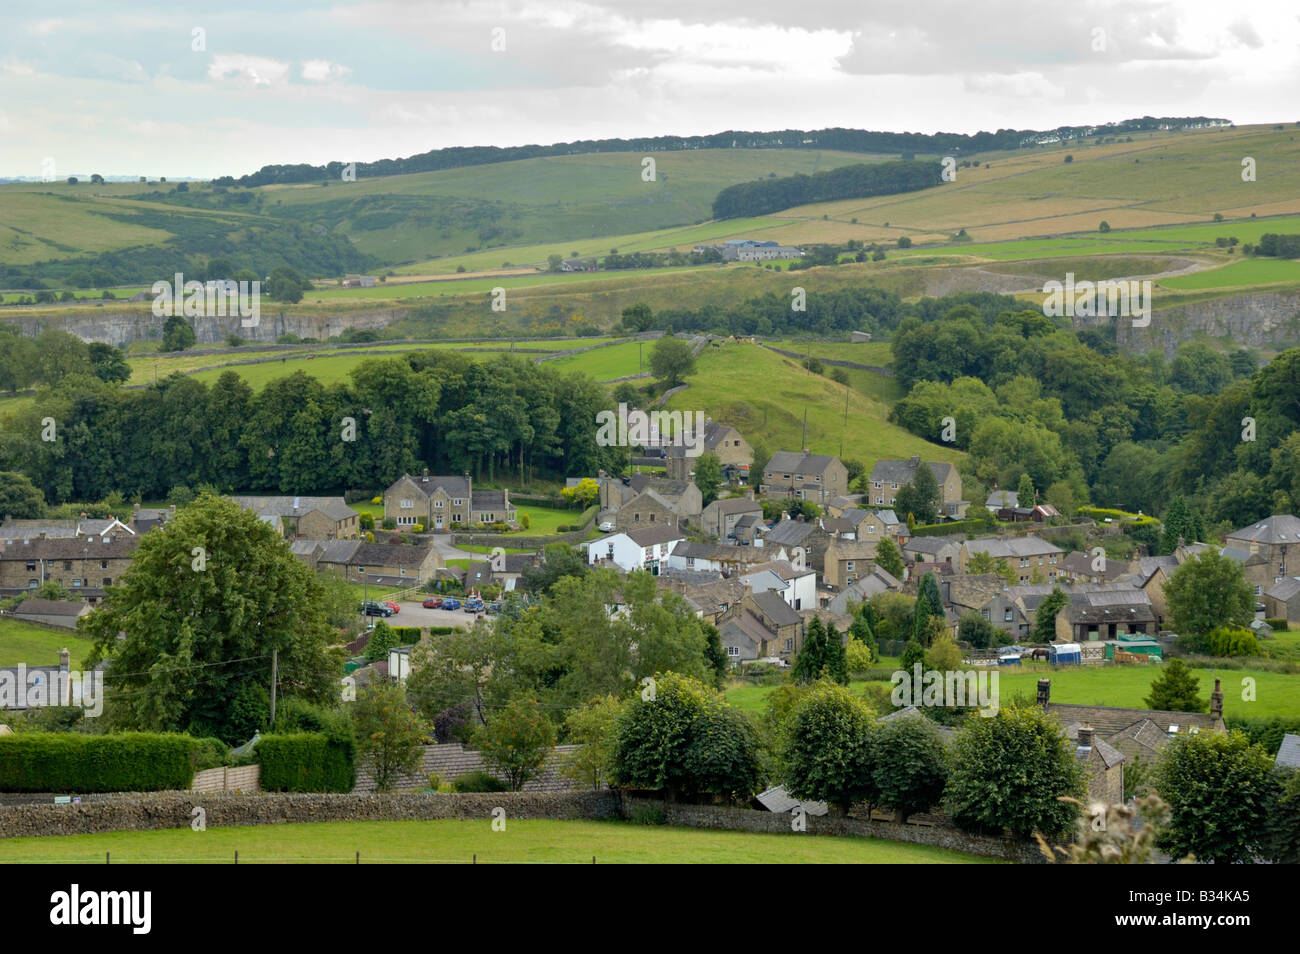 The Plague village of Eyam, Derbyshire, England - Stock Image